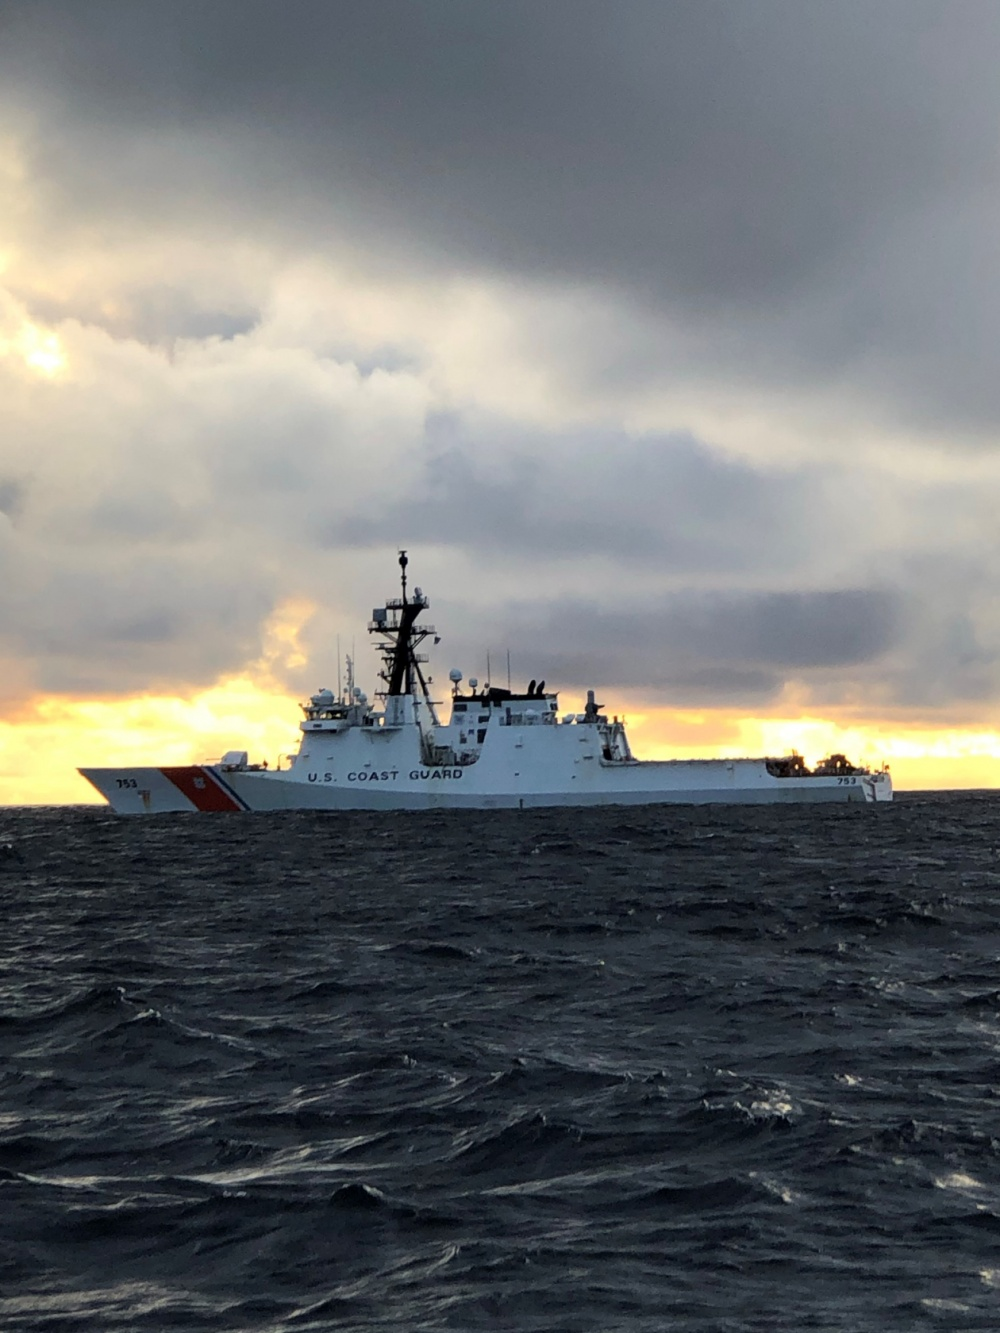 The U.S. Coast Guard Cutter Hamilton (WMSL-753) underway in the Eastern Pacific Ocean, August 19, 2020. The Coast Guard Cutter Hamilton is one of two 418-foot National Security Cutters homeported in Charleston. (U.S. Coast Guard Photo)